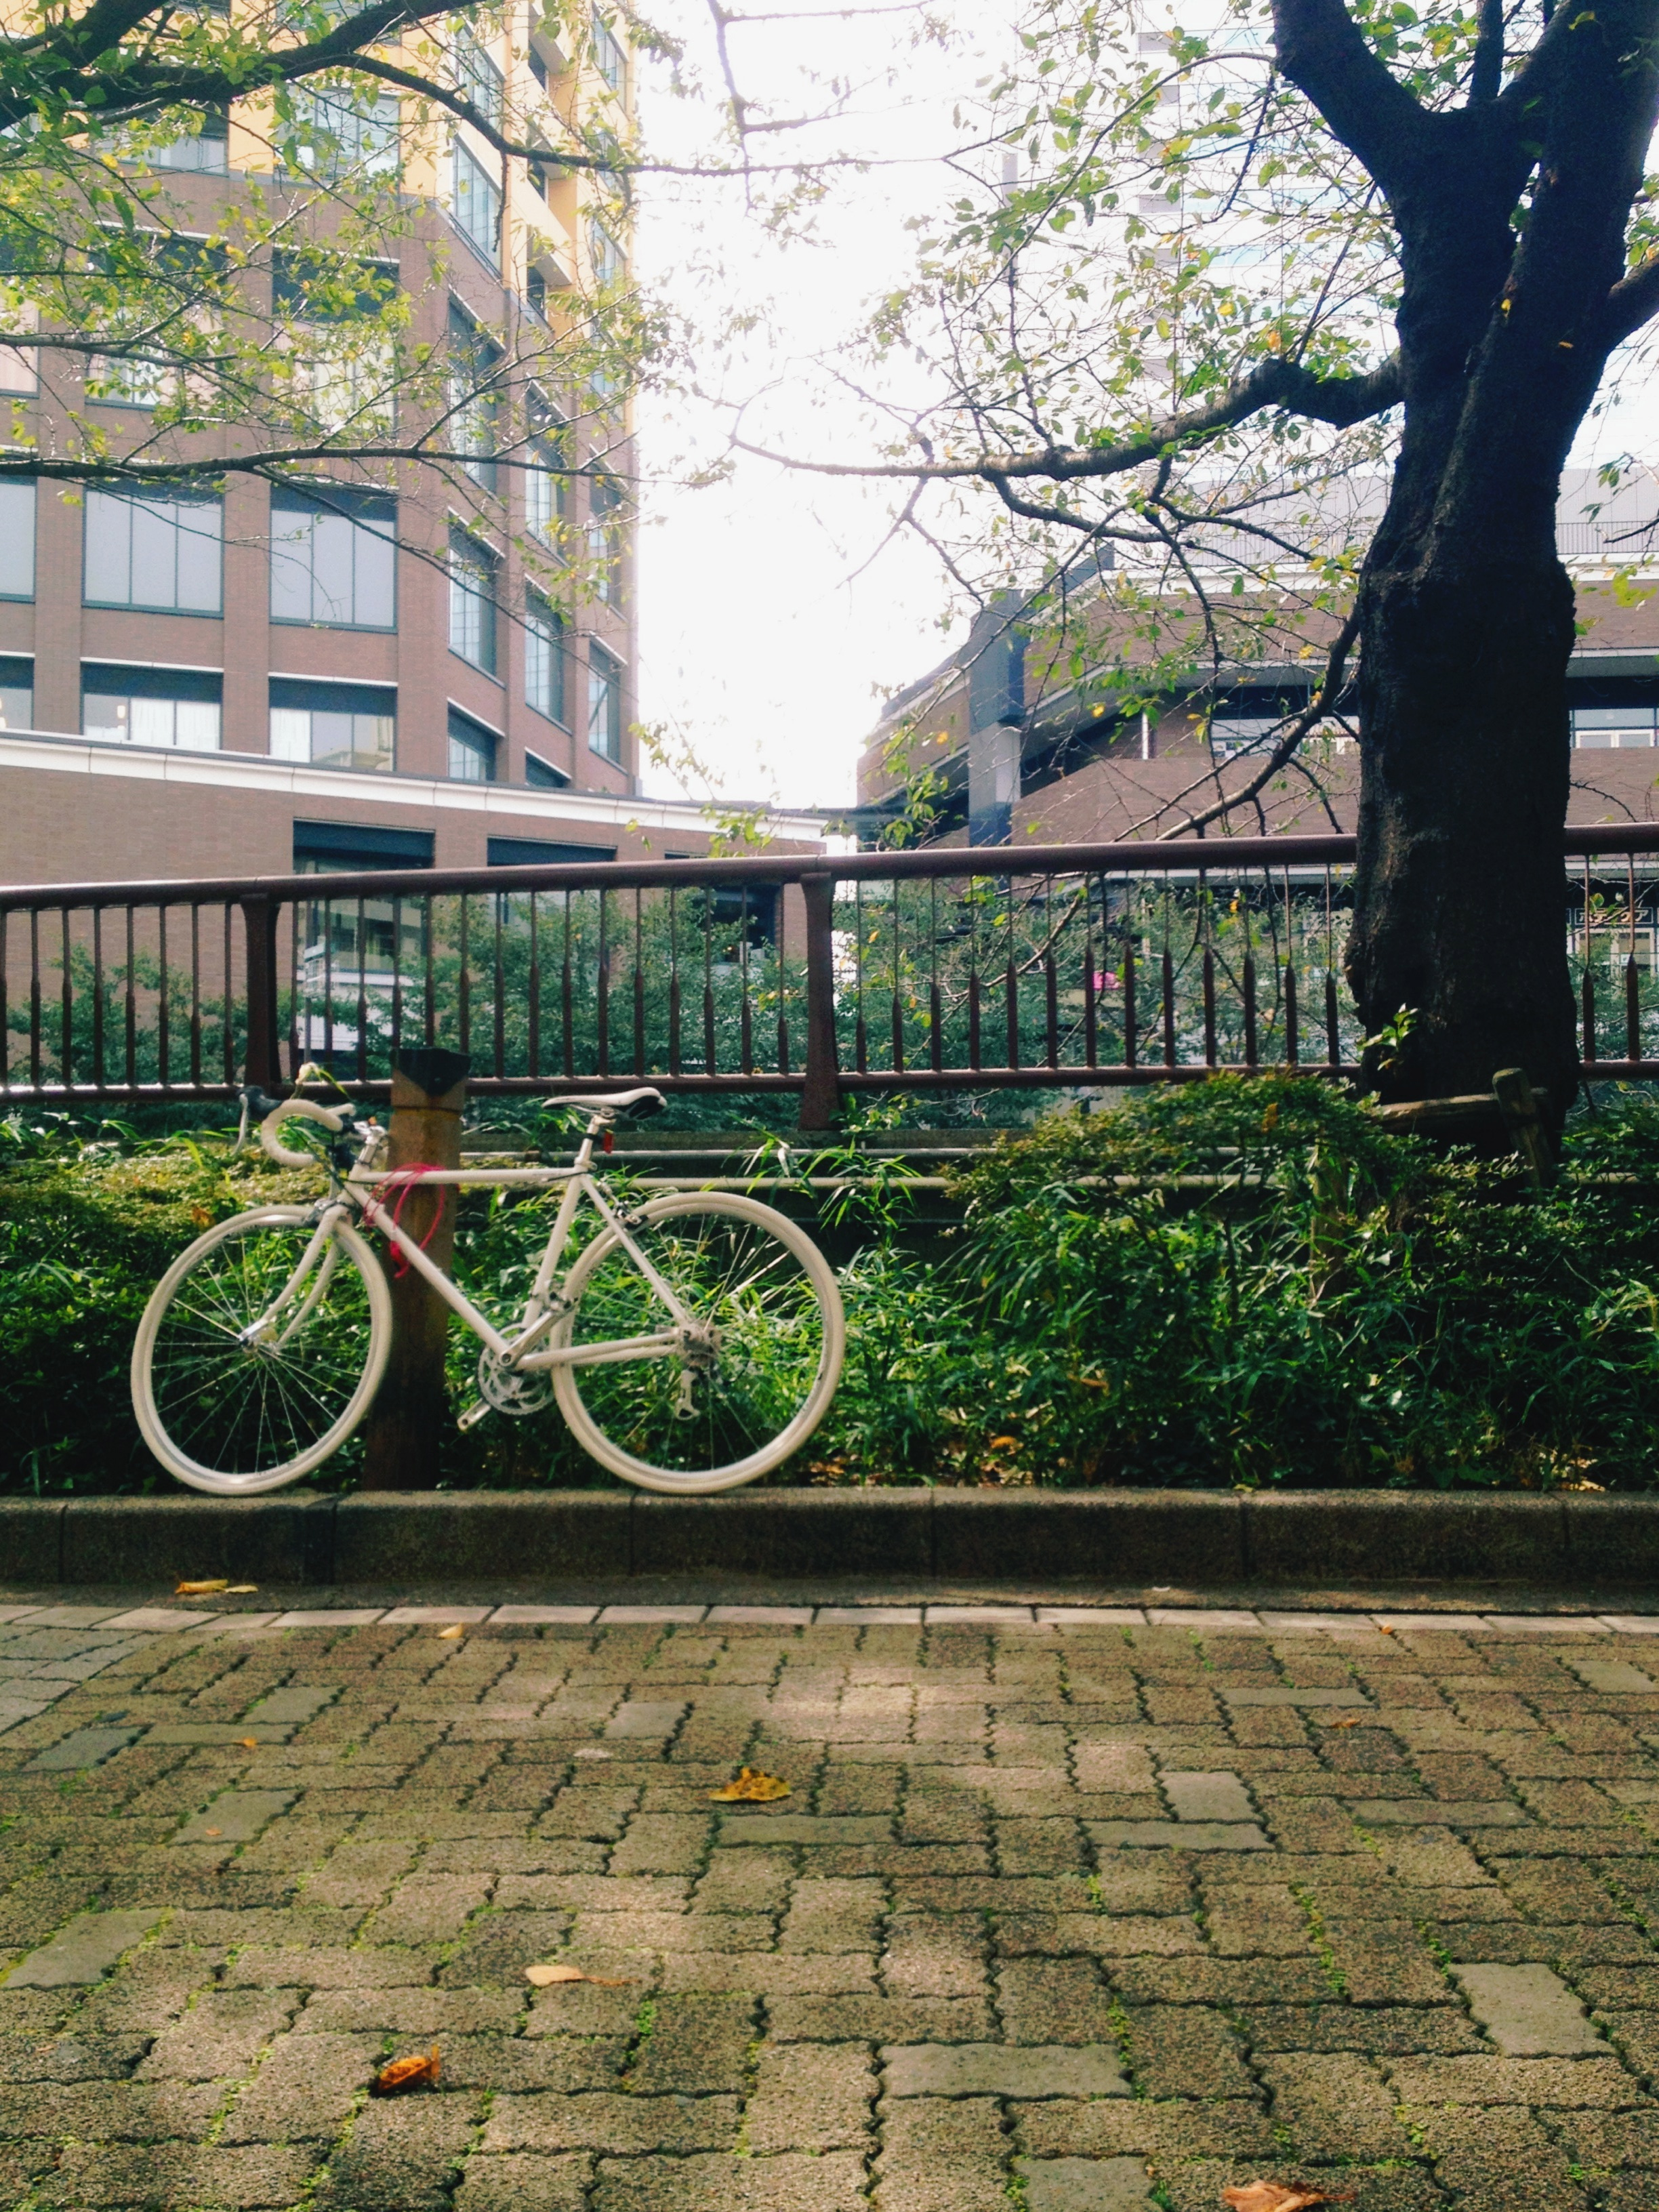 Bicycle by the canal in Meguro